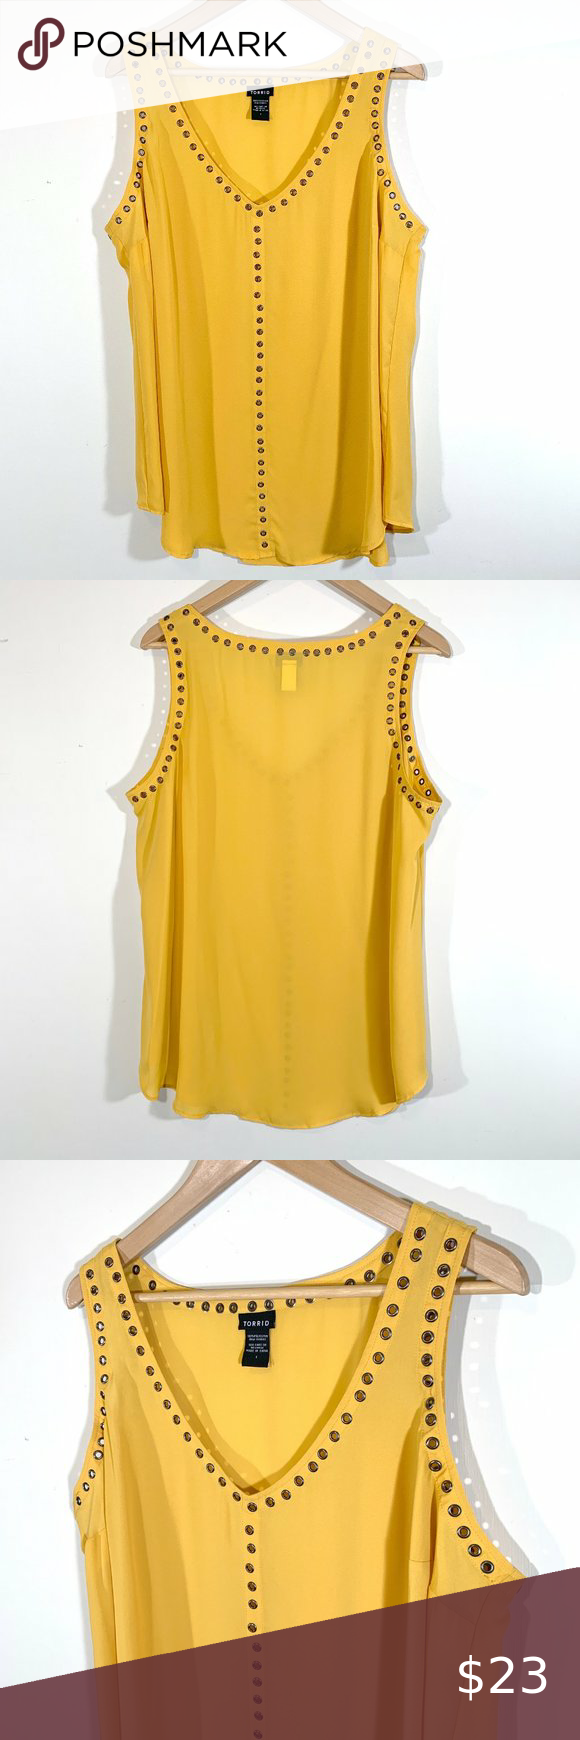 Torrid | Grommet V-Neck Tank Top V-neck tank top by Torrid. Collar, sleeve openings, and front of top lined with metal grommets. Round hem. Lightweight, somewhat sheer, mustard yellow fabric. In great condition. Torrid size 1 (equivalent to 1X).  Materials: 100% Polyester  Size Guide (From Torrid Website) Size: 1 (1X / 14-16) Bust: 42